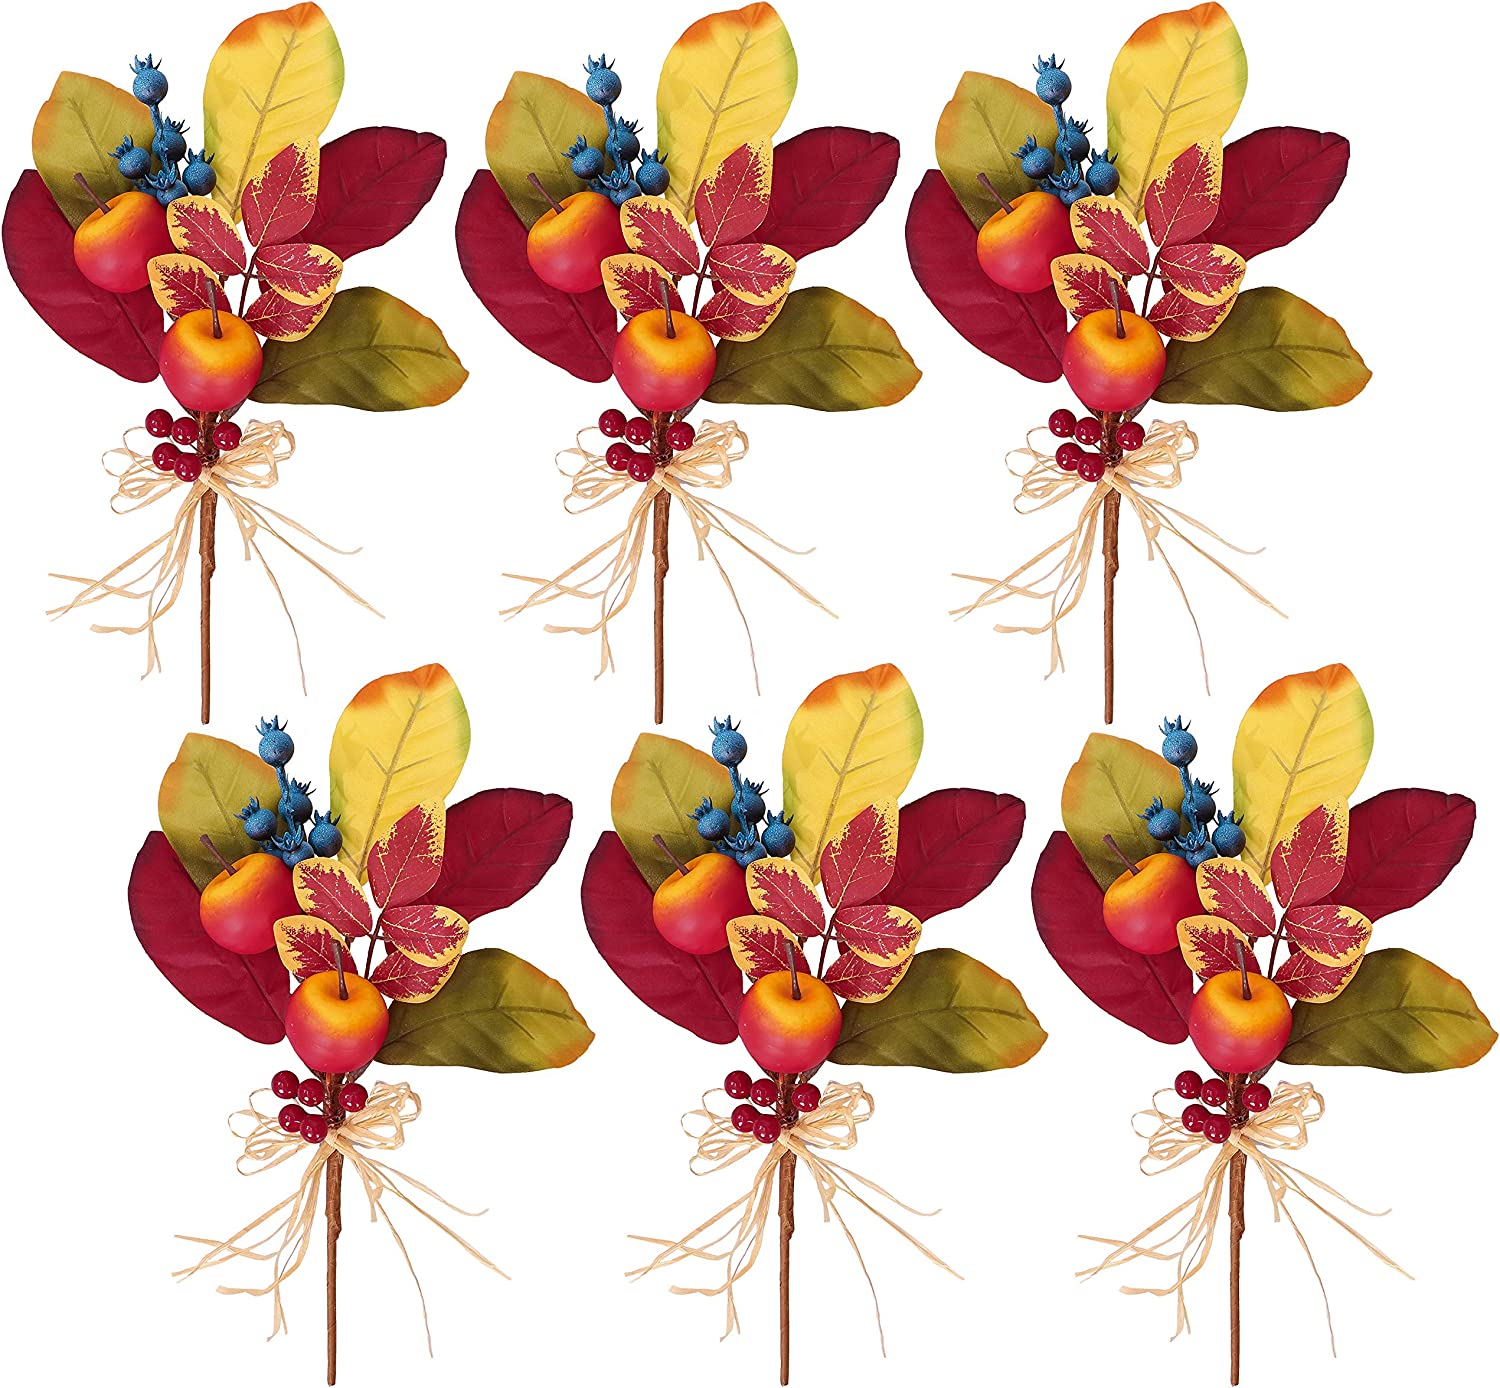 Valery Madelyn 6 Packs Fall Picks with Apple and Blueberry, Fall Stems for Vases, Artificial Floral Picks, Fruit Branches Decorations for Home Thanksgiving Harvest Summer Autumn Table Centerpiece